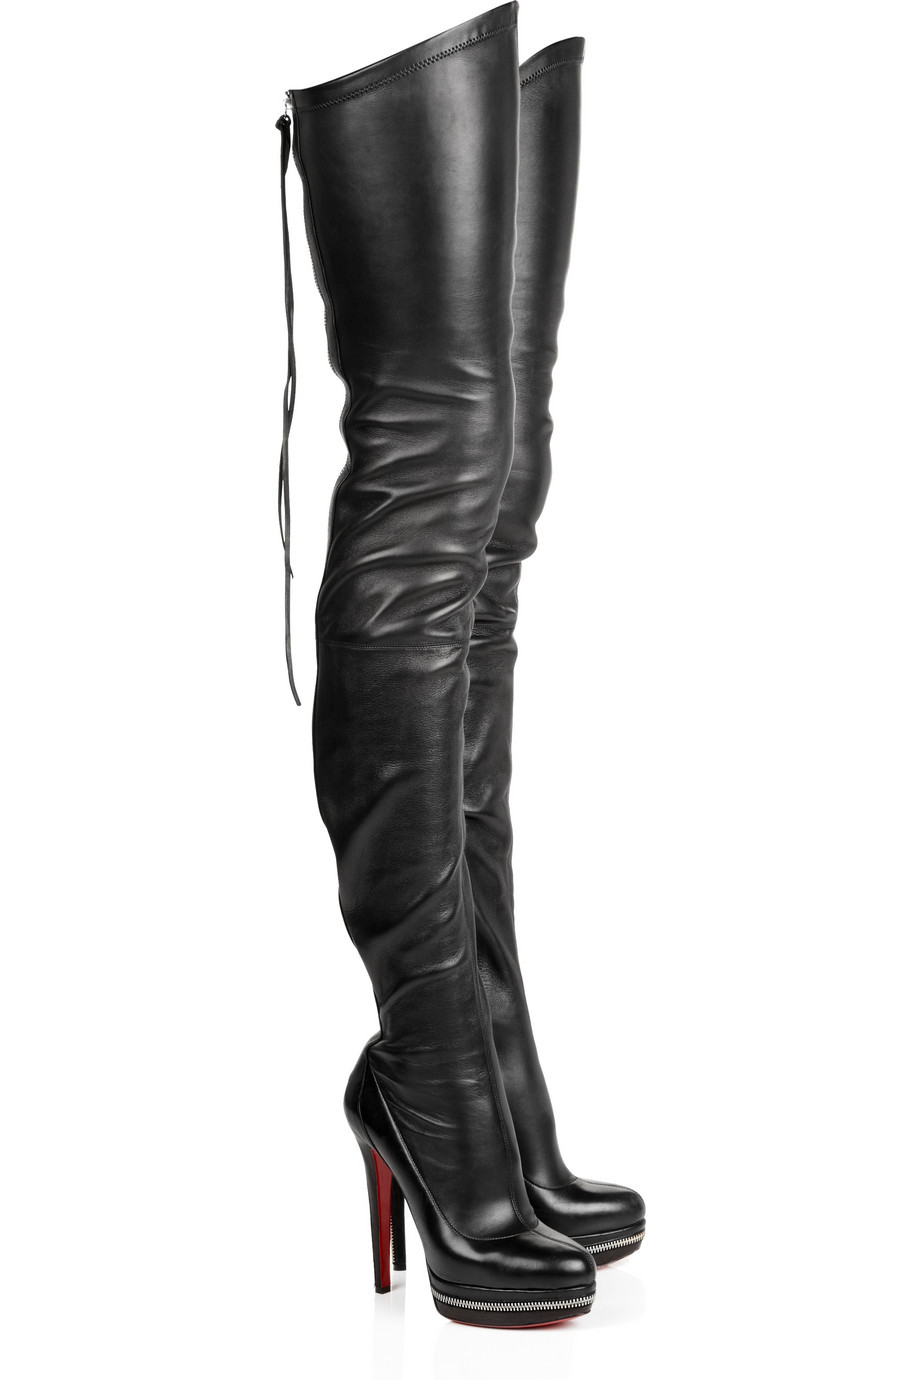 New winter boots knee boots stretch boots high-heeled black boots high boots boots fringed boots(China (Mainland))